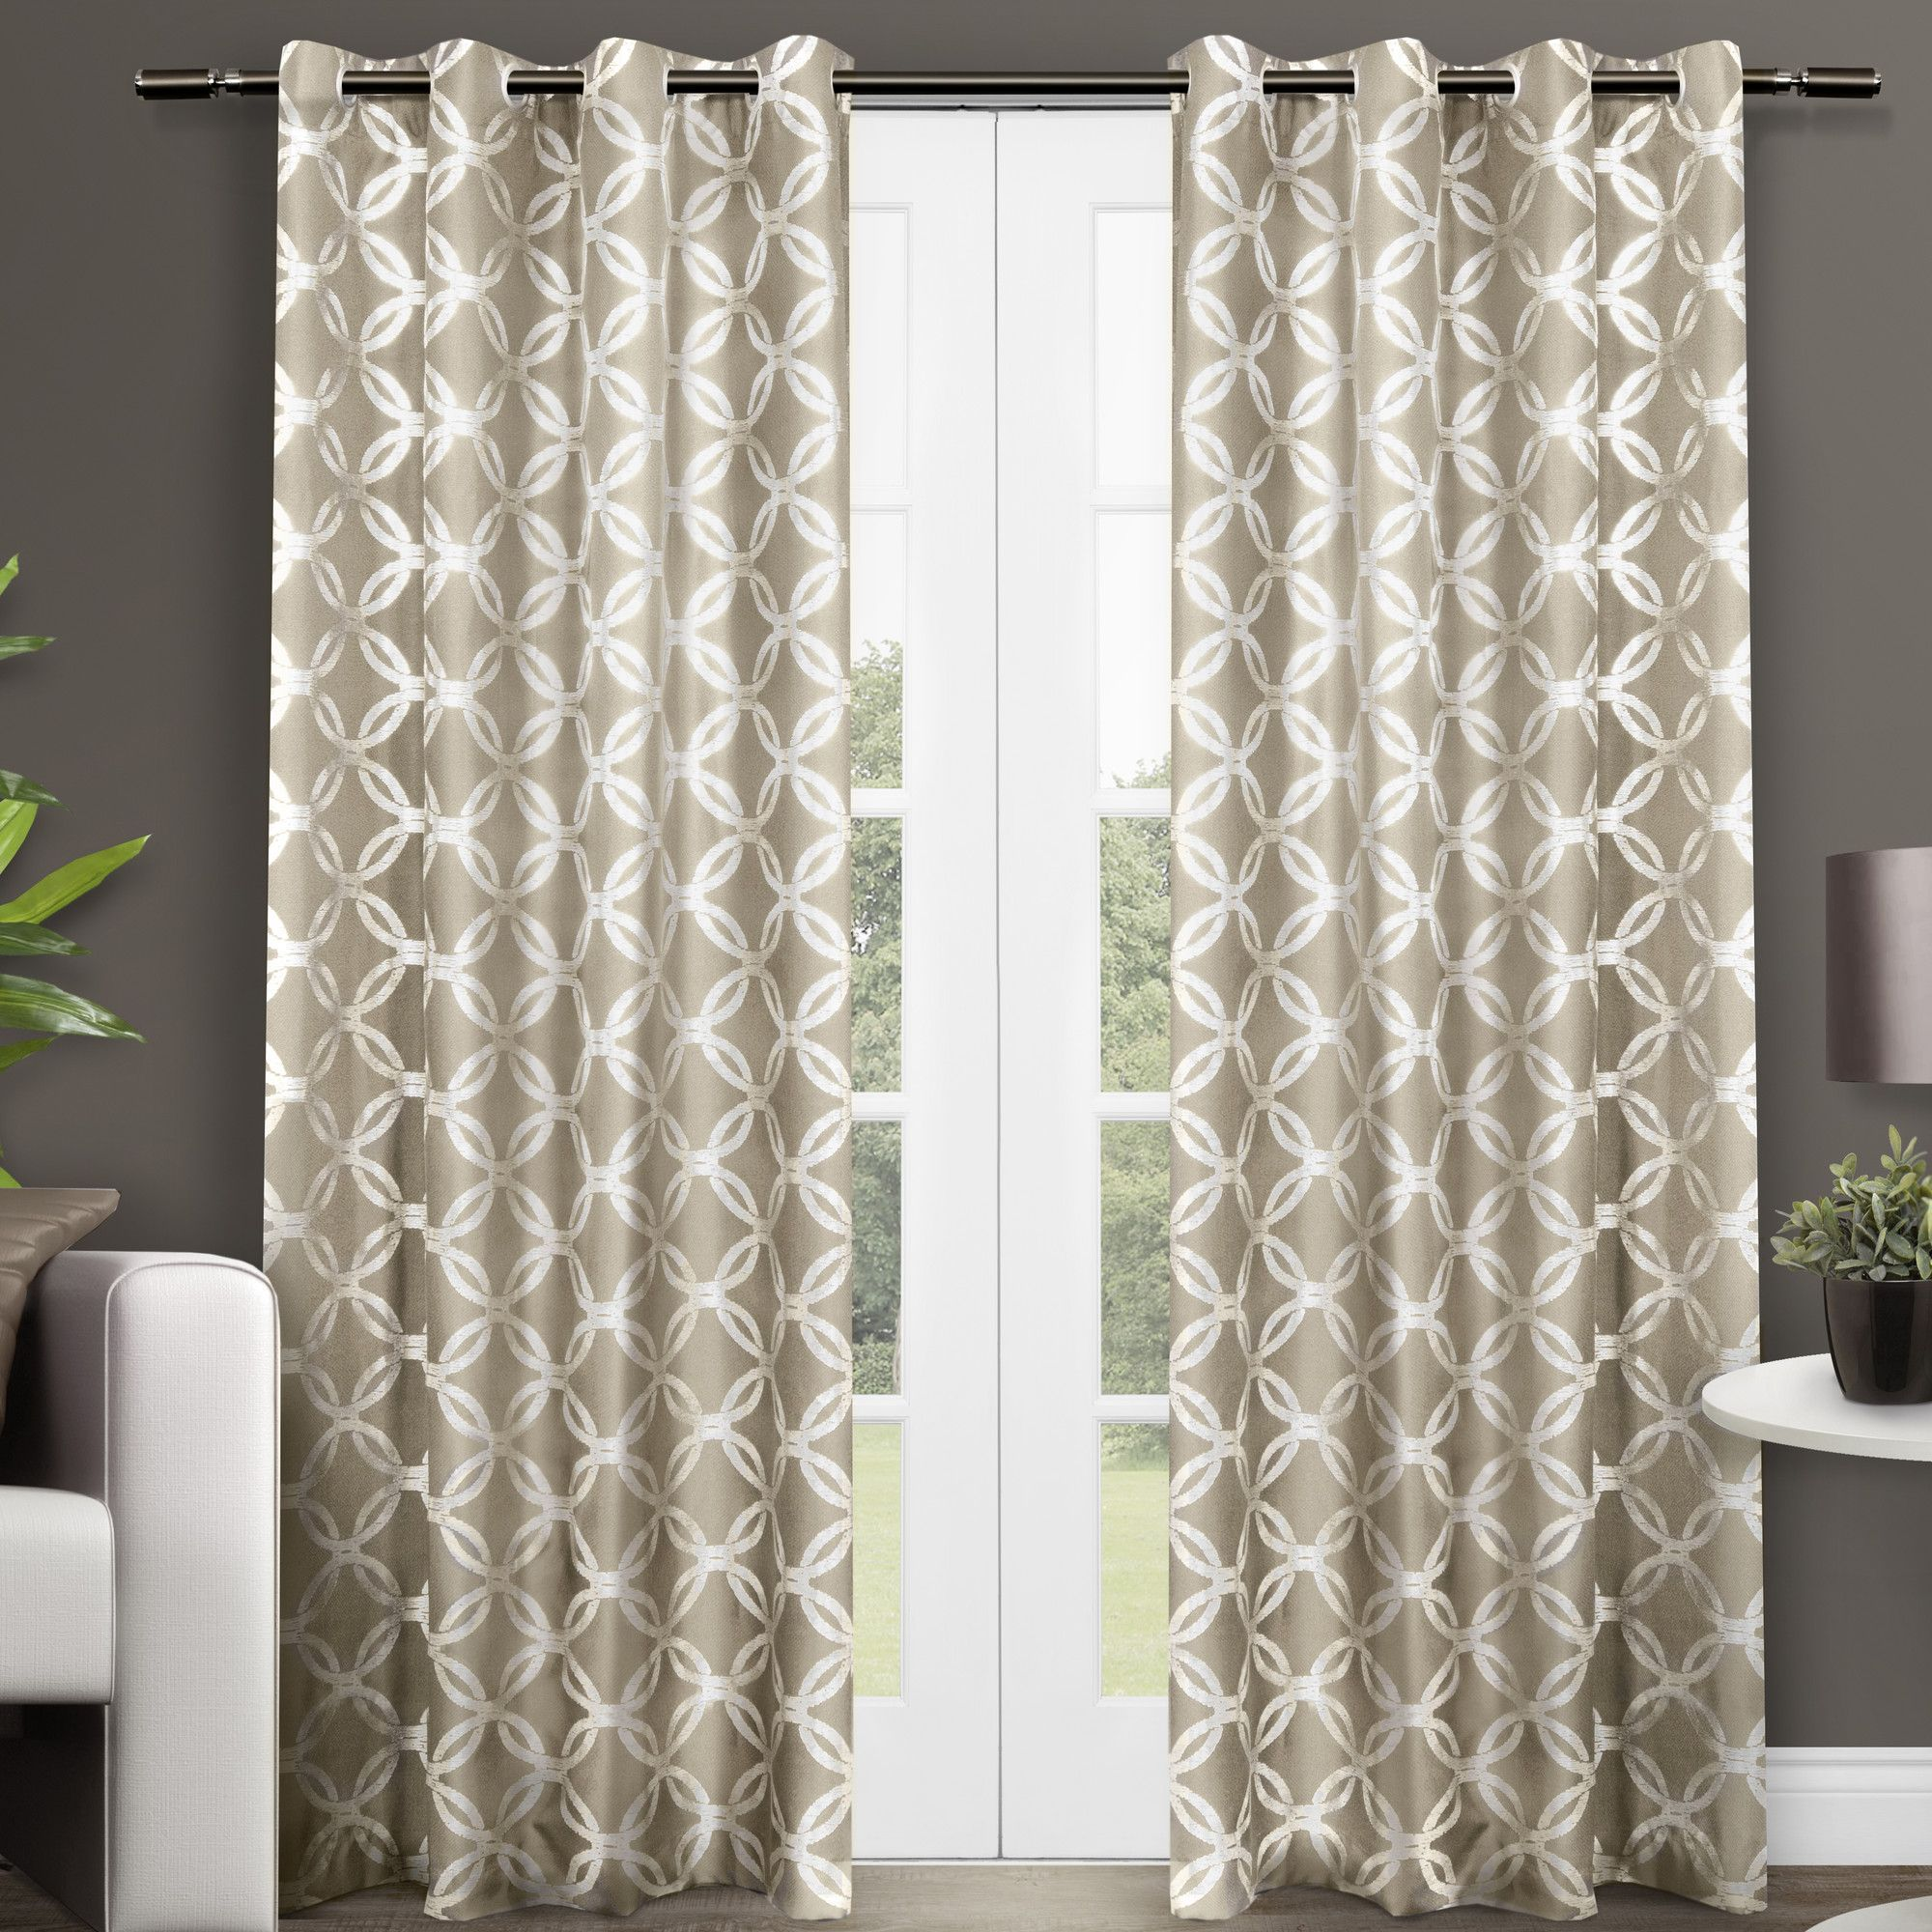 panels home affordable curtains curtain turquoise exotic modern and dark drapes functions decor settings